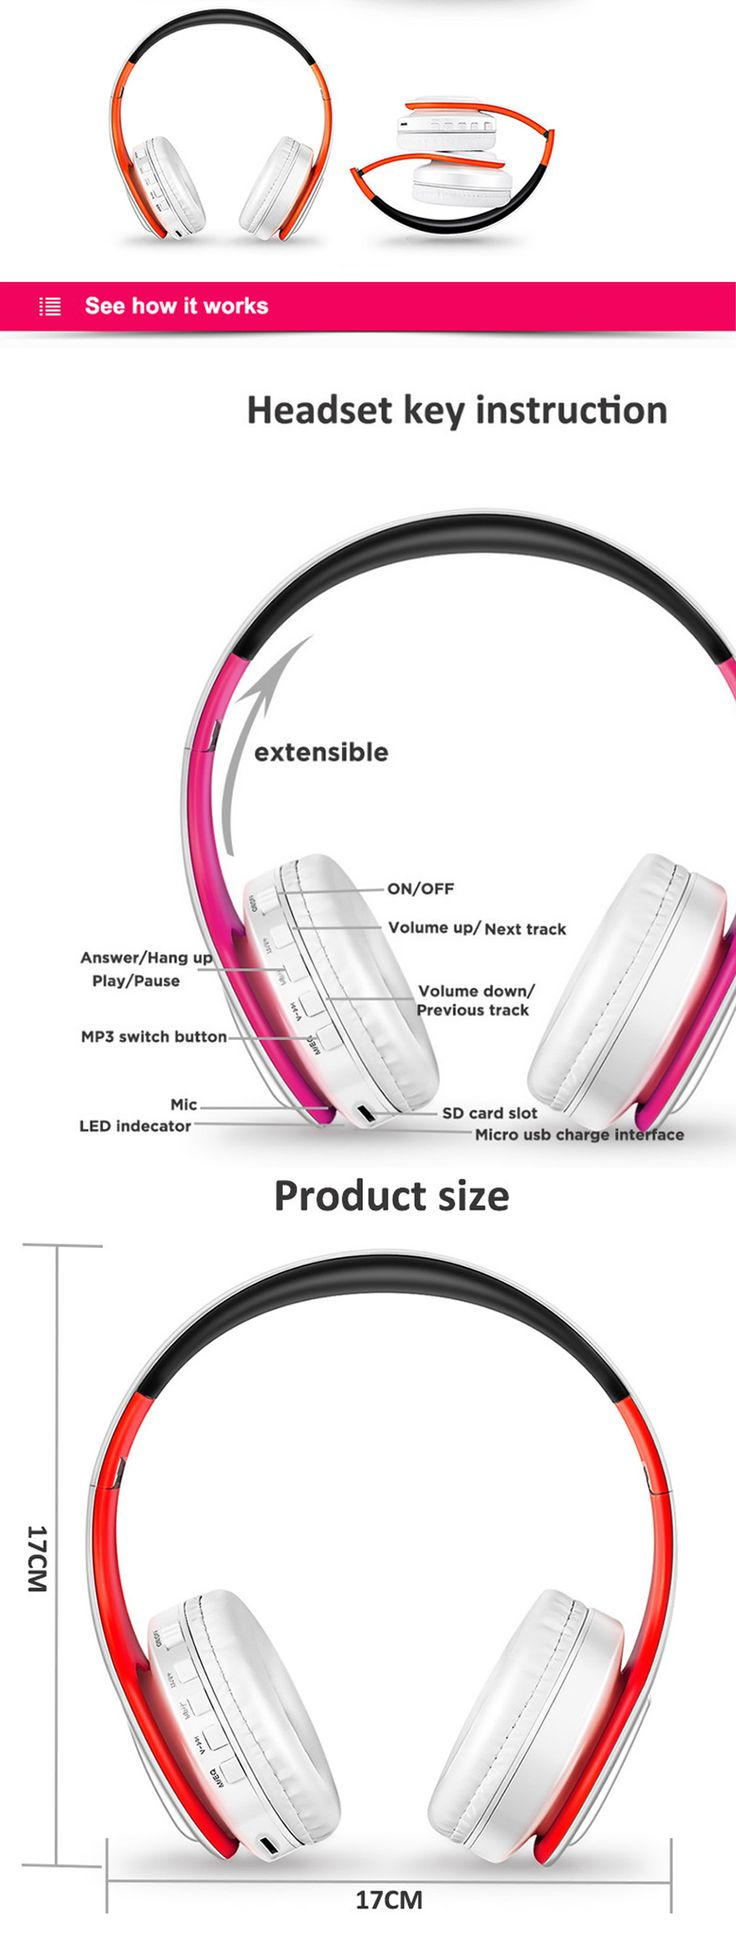 Bluetooth Wireless Stereo Sport Headphone with Mic - White, Orange - Free Shipping - DealExtreme